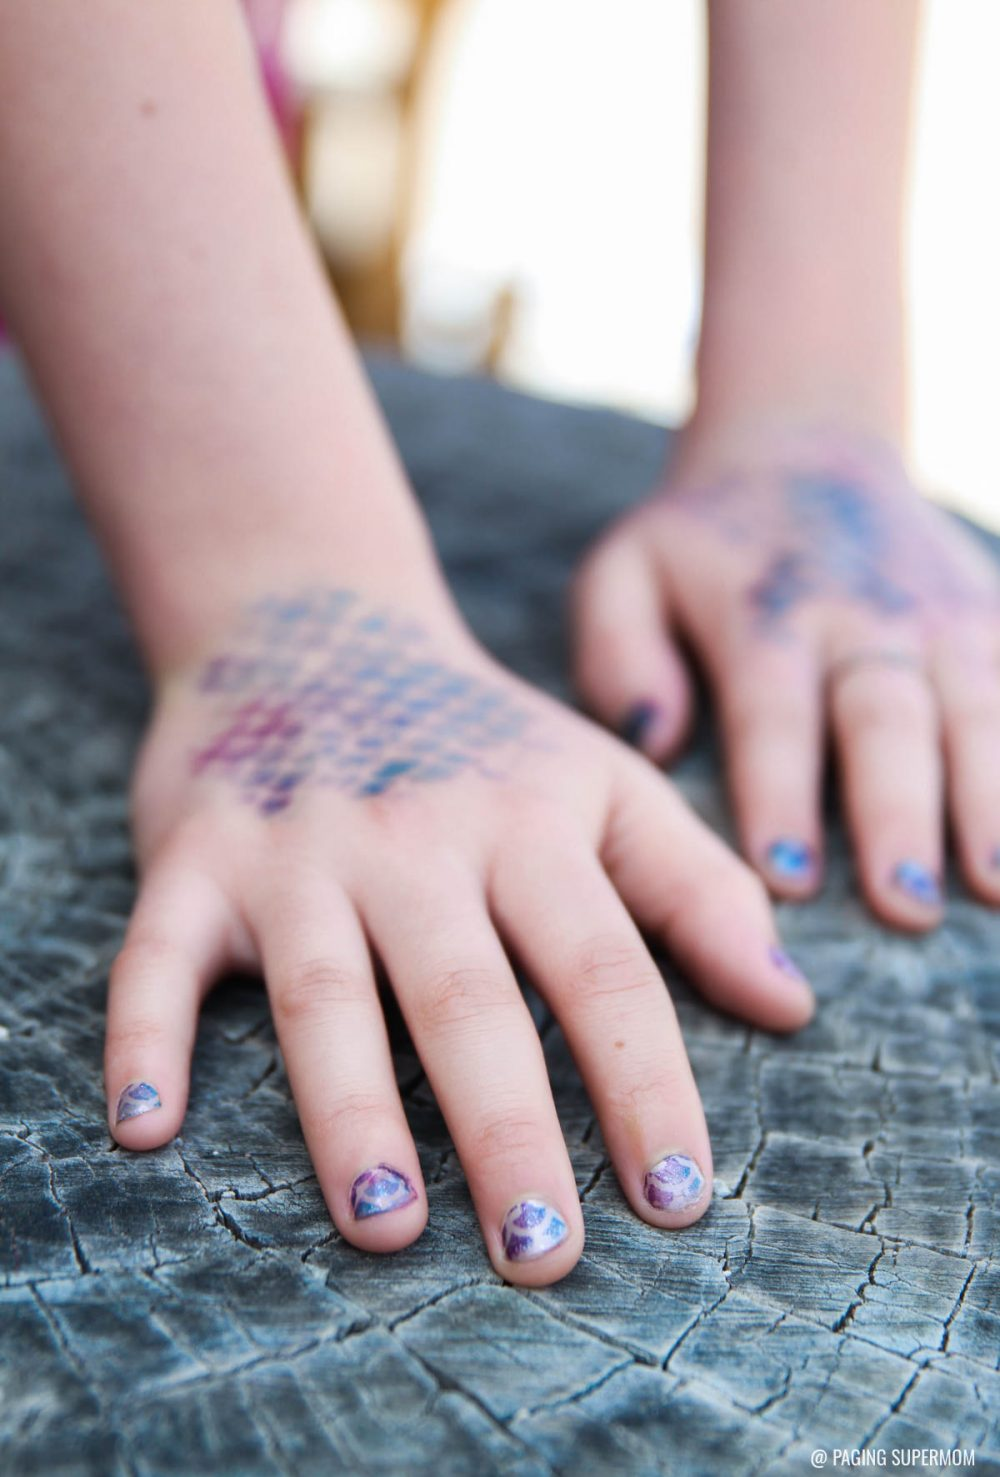 How to do a Mermaid Manicure with this Cricut stencil via @PagingSupermom